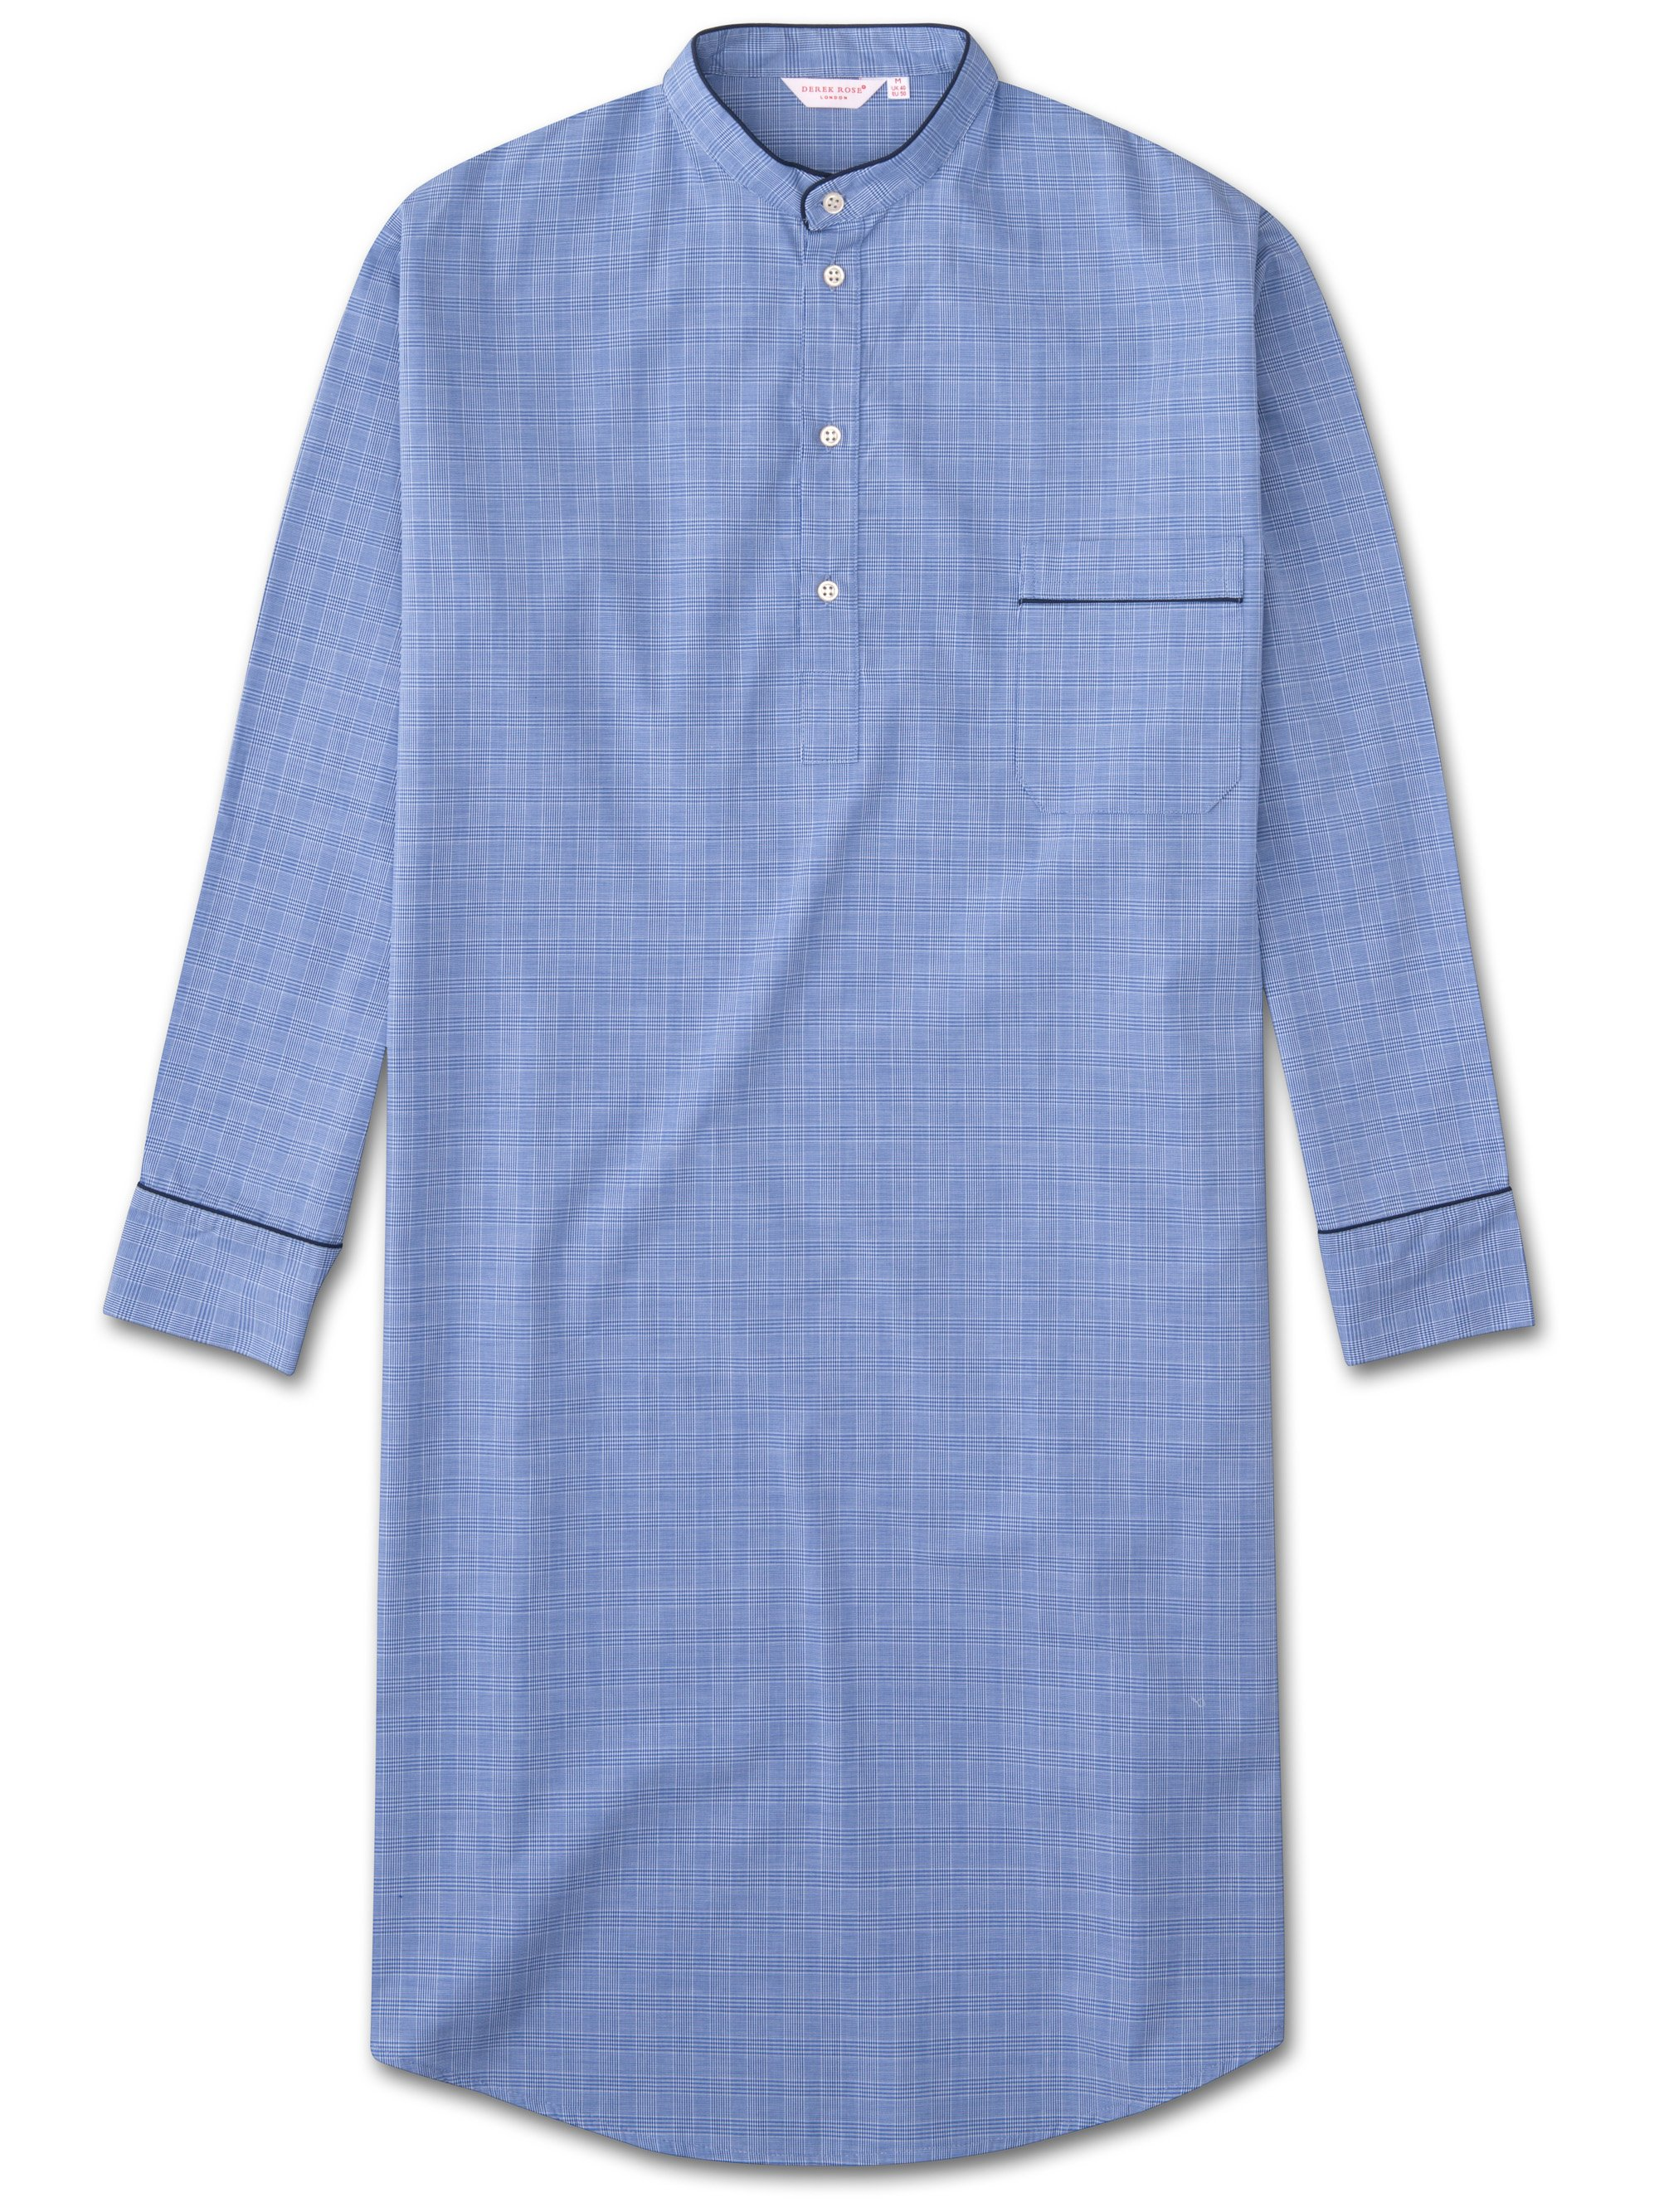 Men's Pullover Nightshirt Felsted 3 Cotton Check Blue